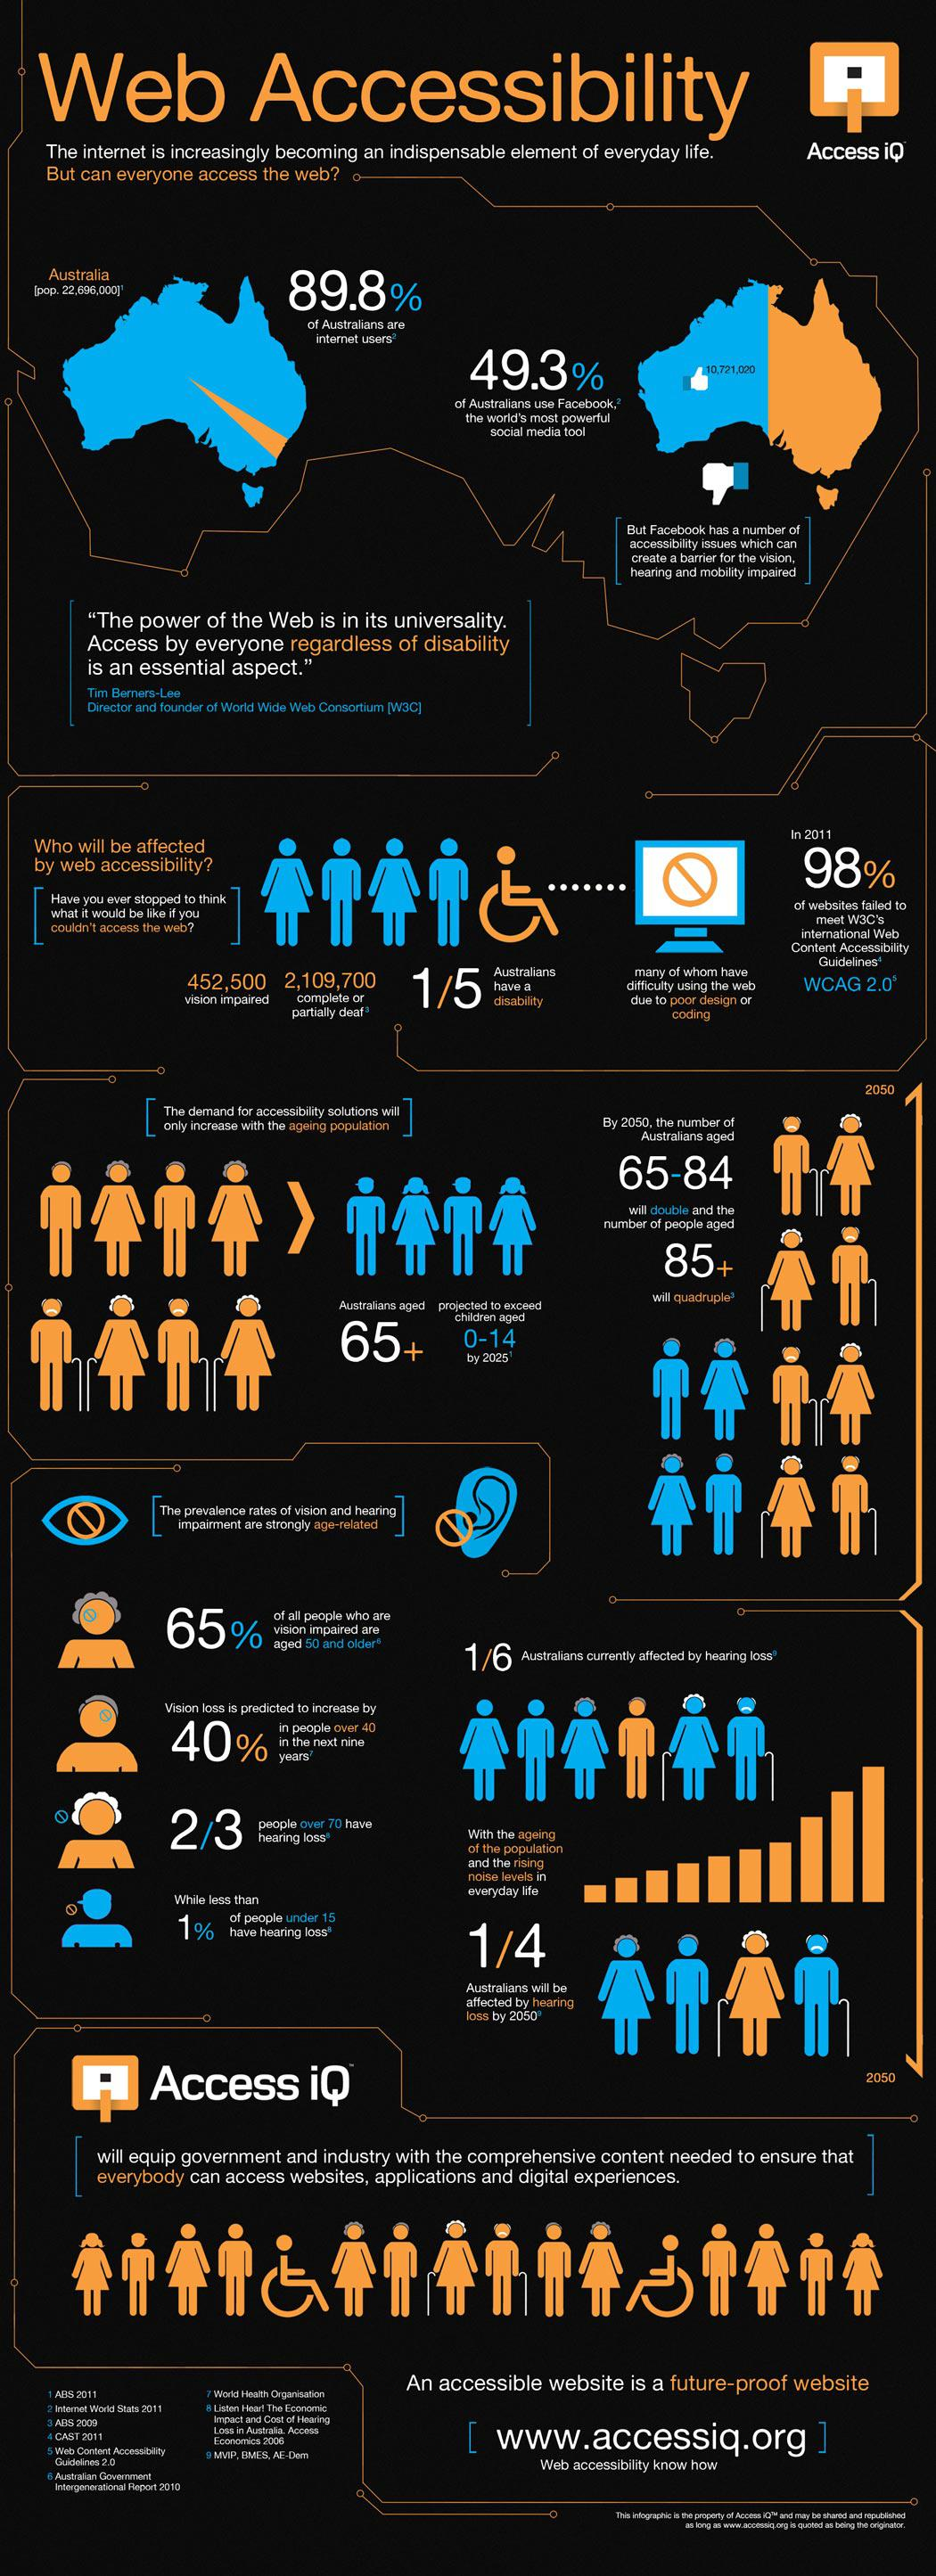 Example infographic, discussed below